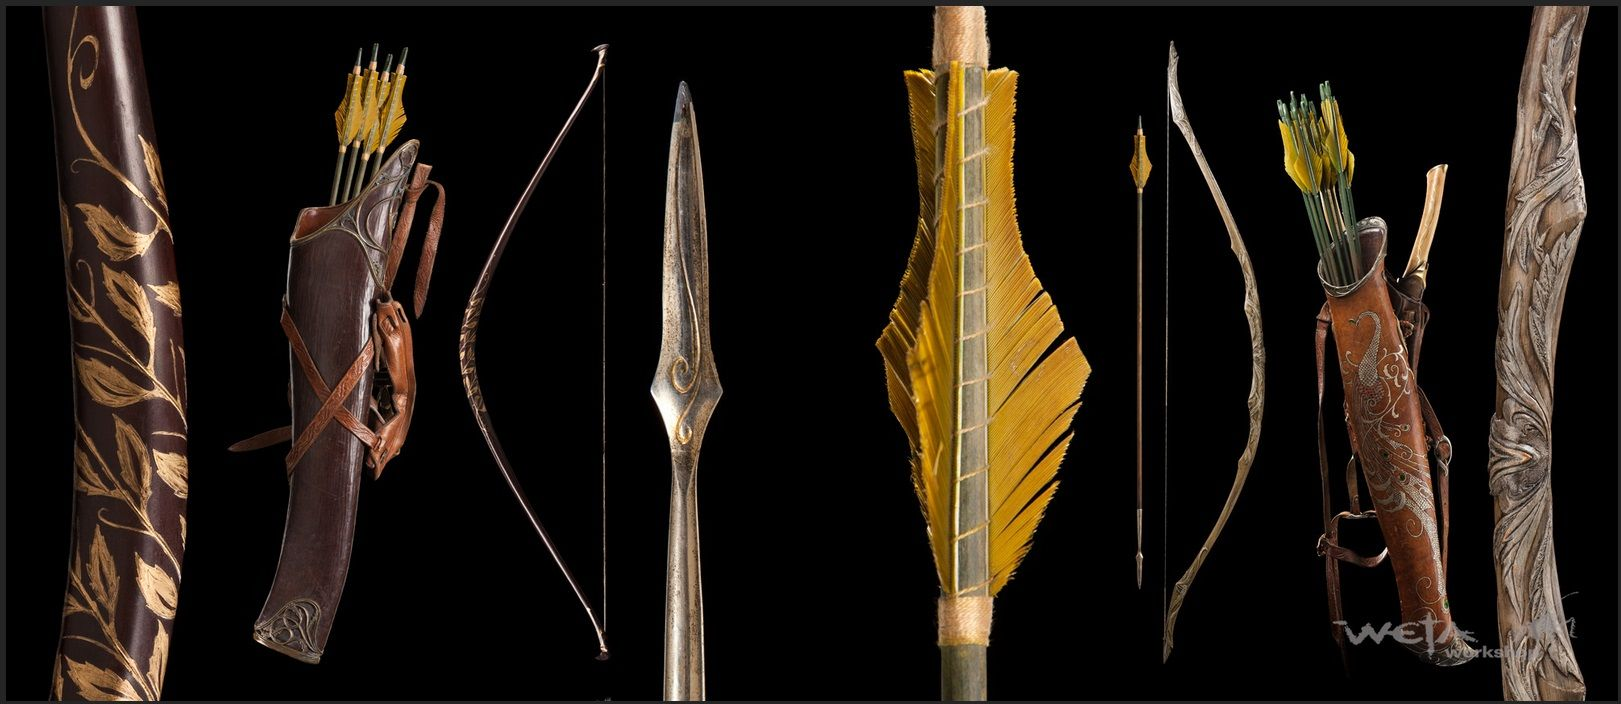 Legolas Weapons Weta The Hobbit Fantasy Weapons